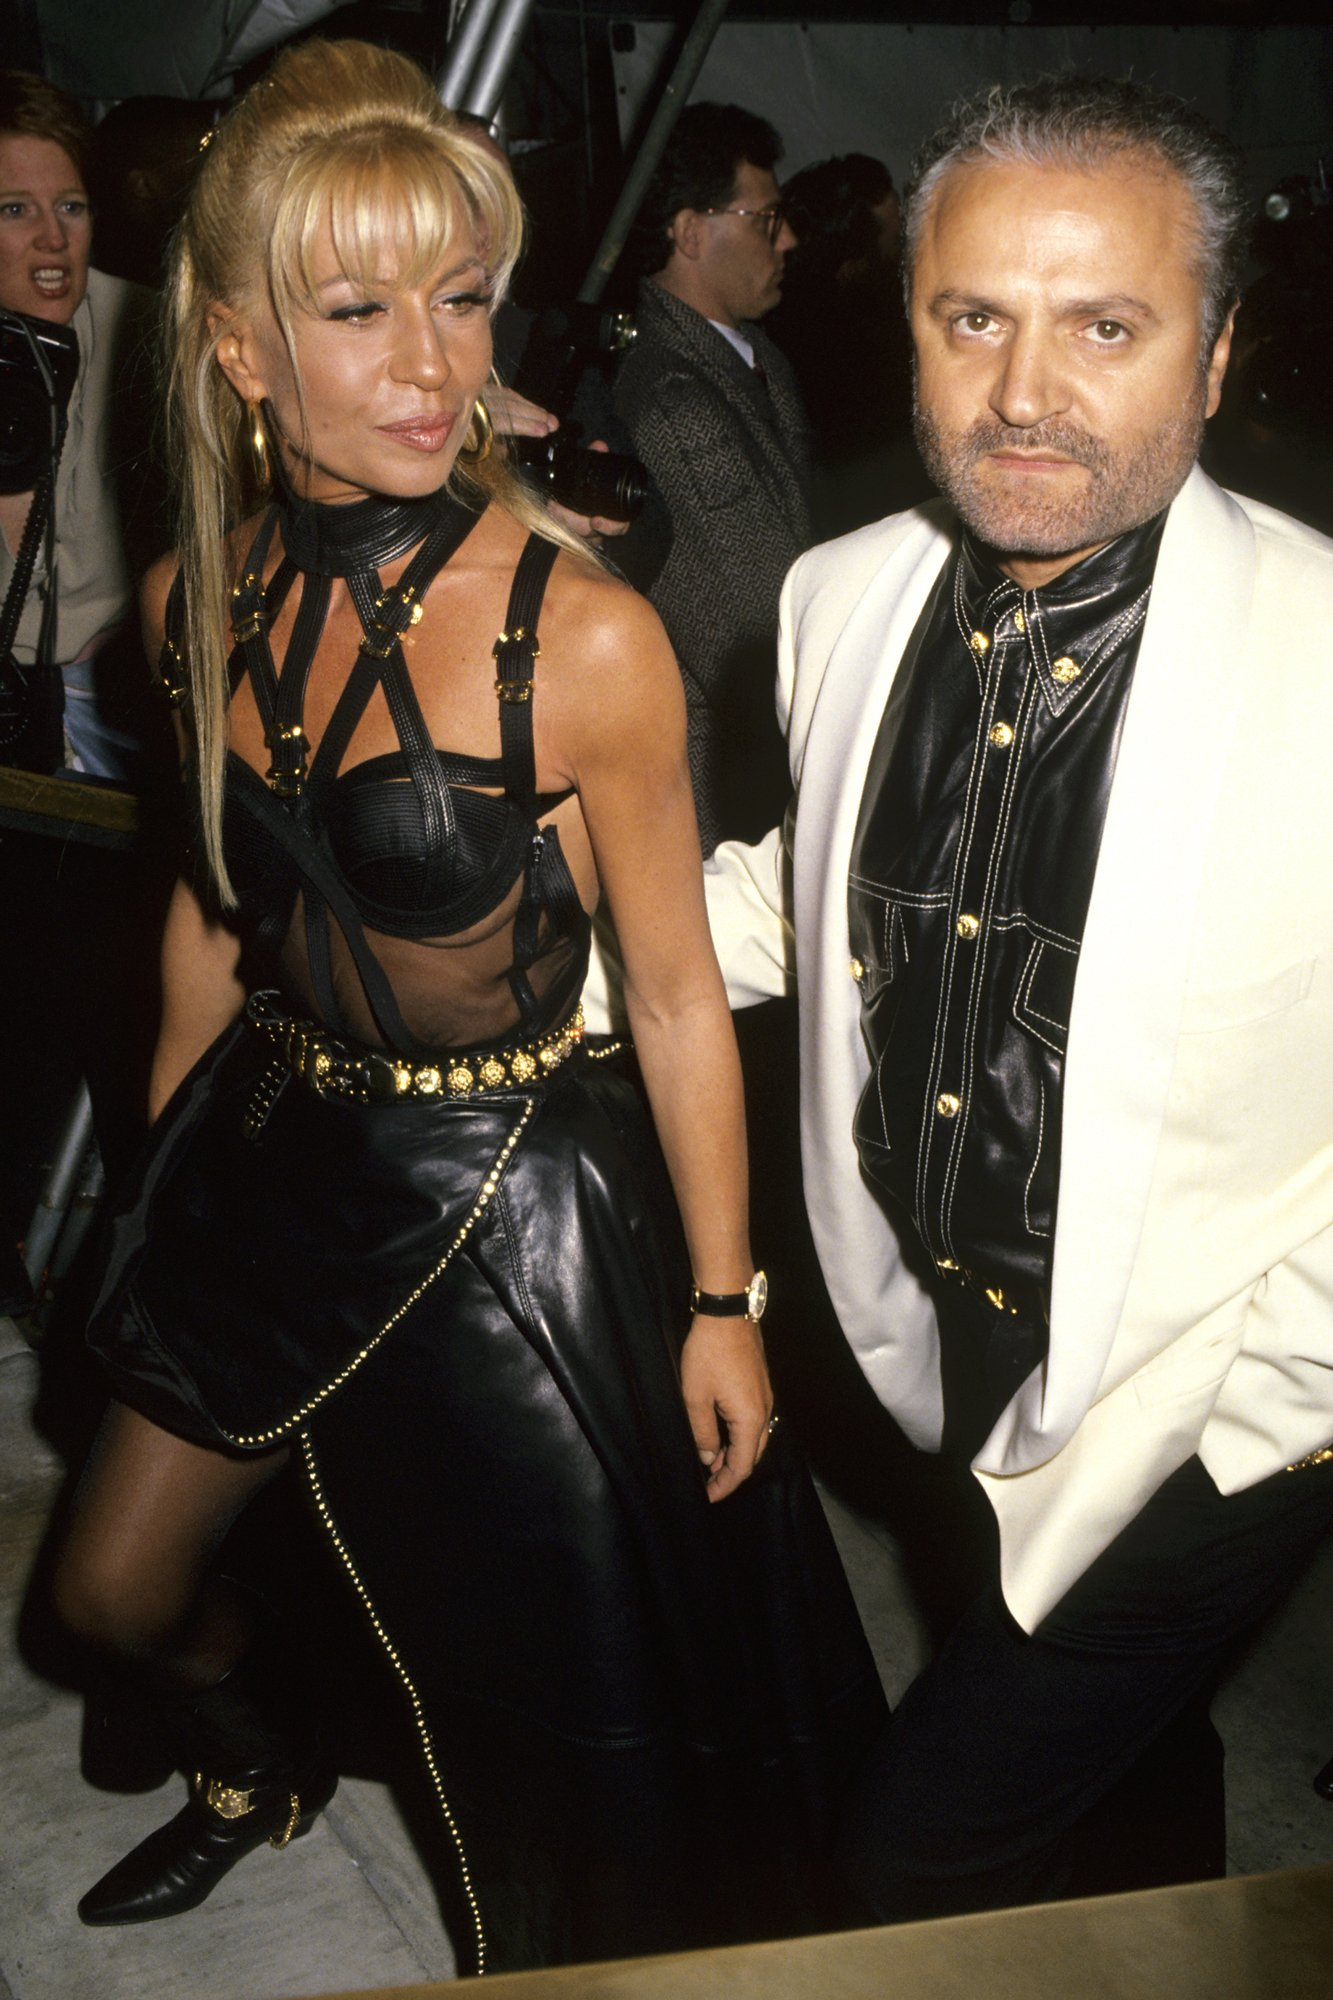 L'assassinio di Gianni Versace